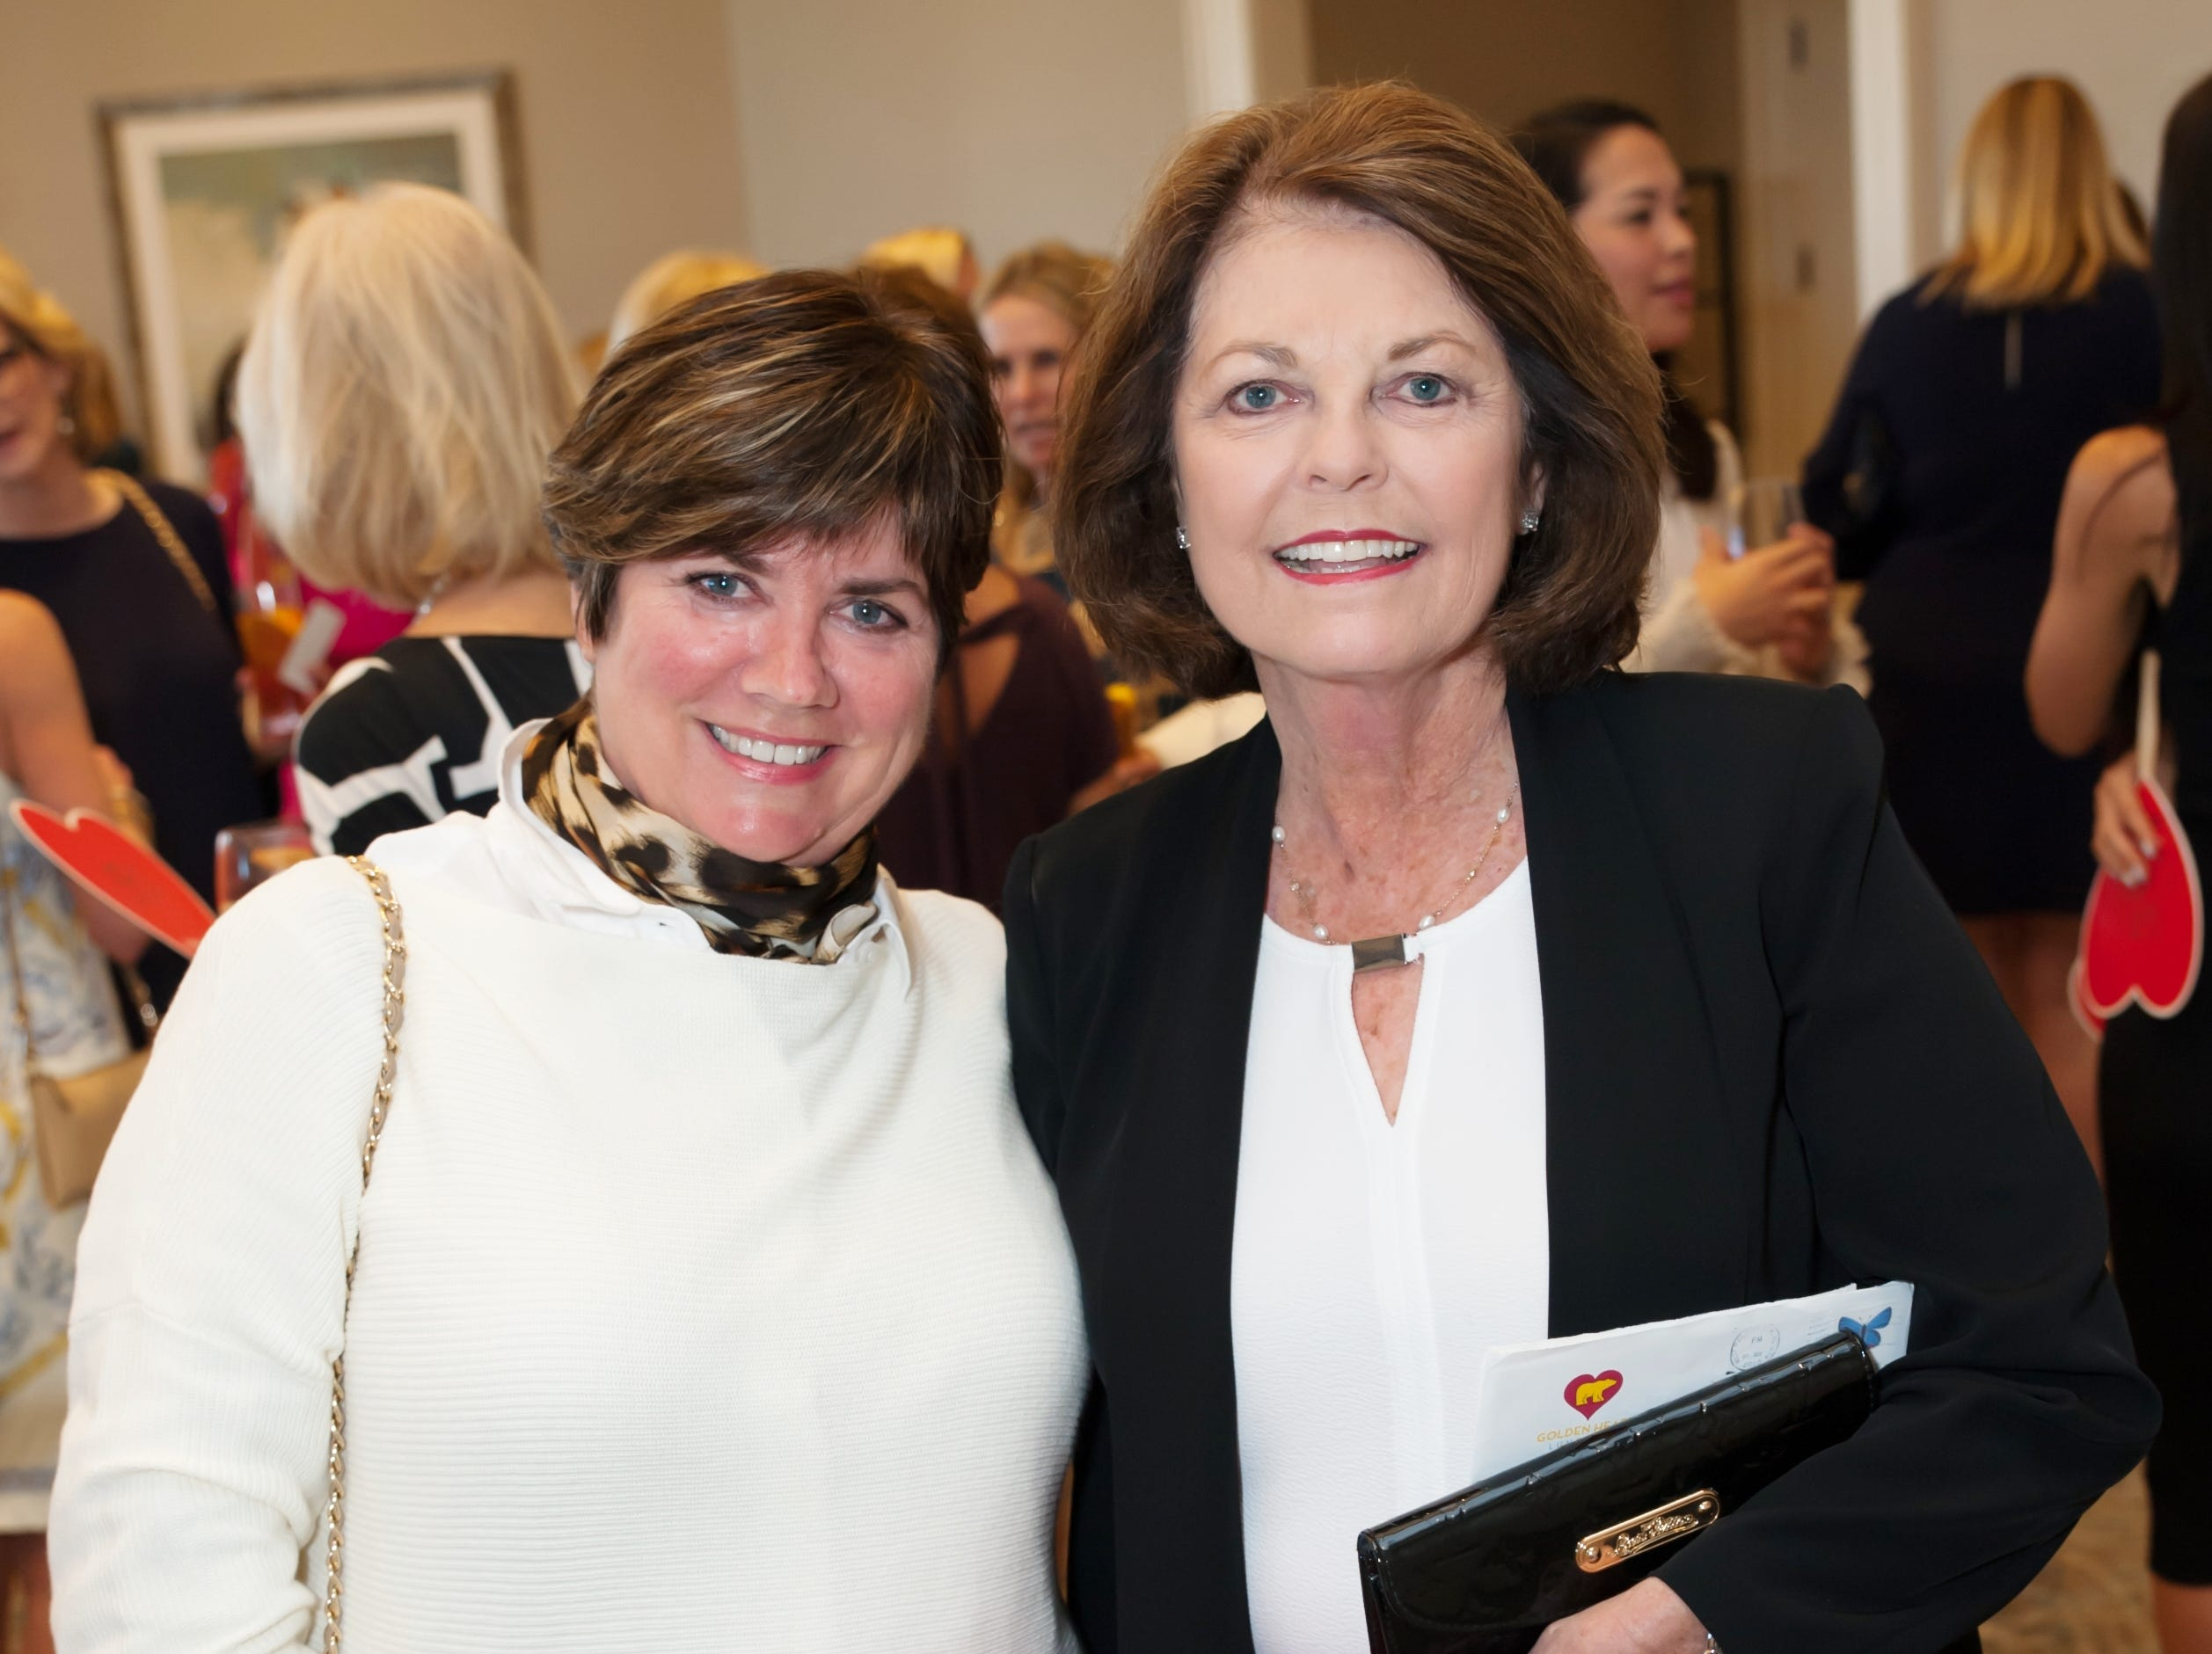 Lorri Wesselman, left, and Gail Eissey at the Golden Heart Luncheon in Palm Beach Gardens.